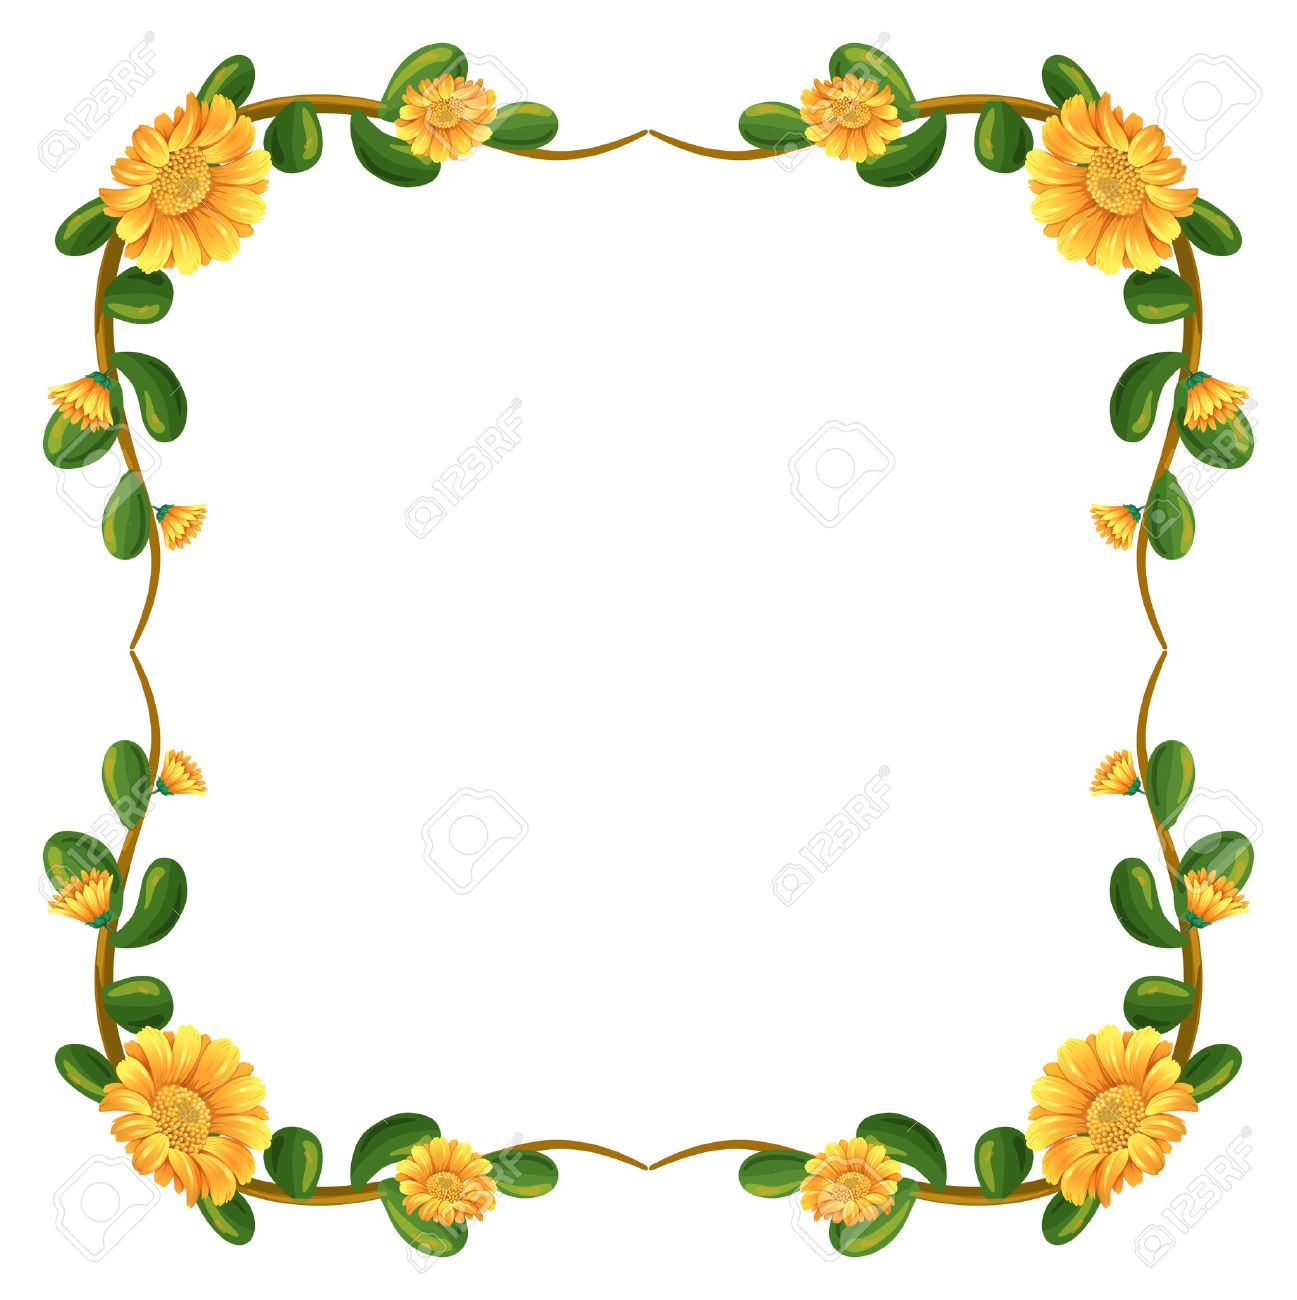 Illustration of a floral border with yellow flowers on a white...